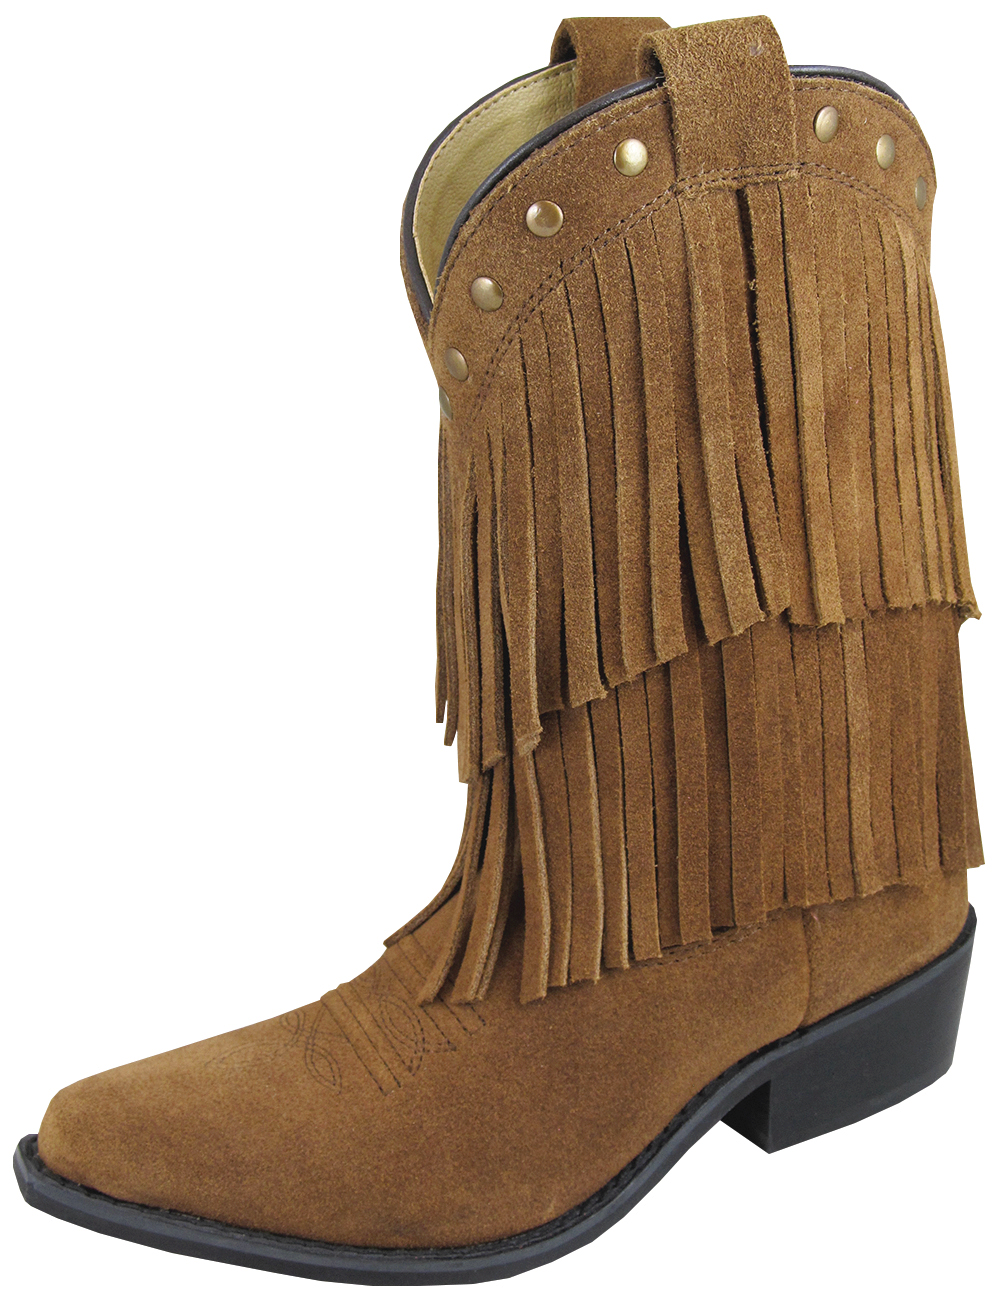 Smoky Mountain Child's Wisteria Double Fringe Leather Boots - Brown 1 R Brown